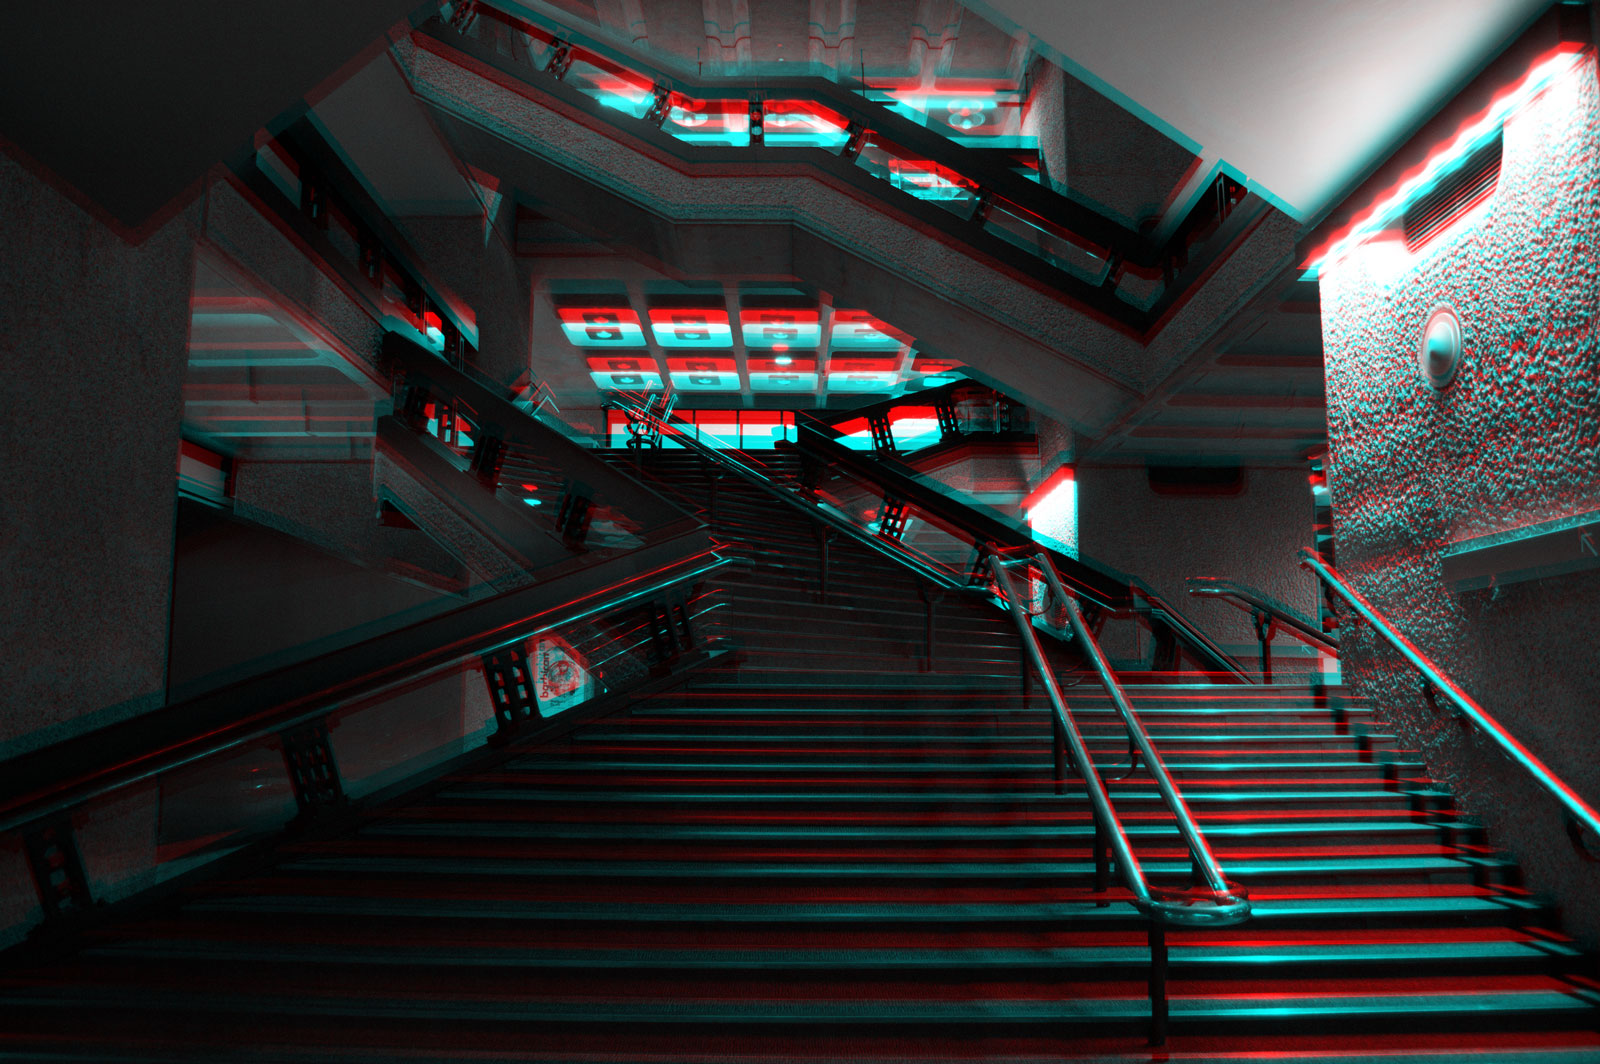 5-Lower-Floor-Staircases-Anaglyphic.jpg